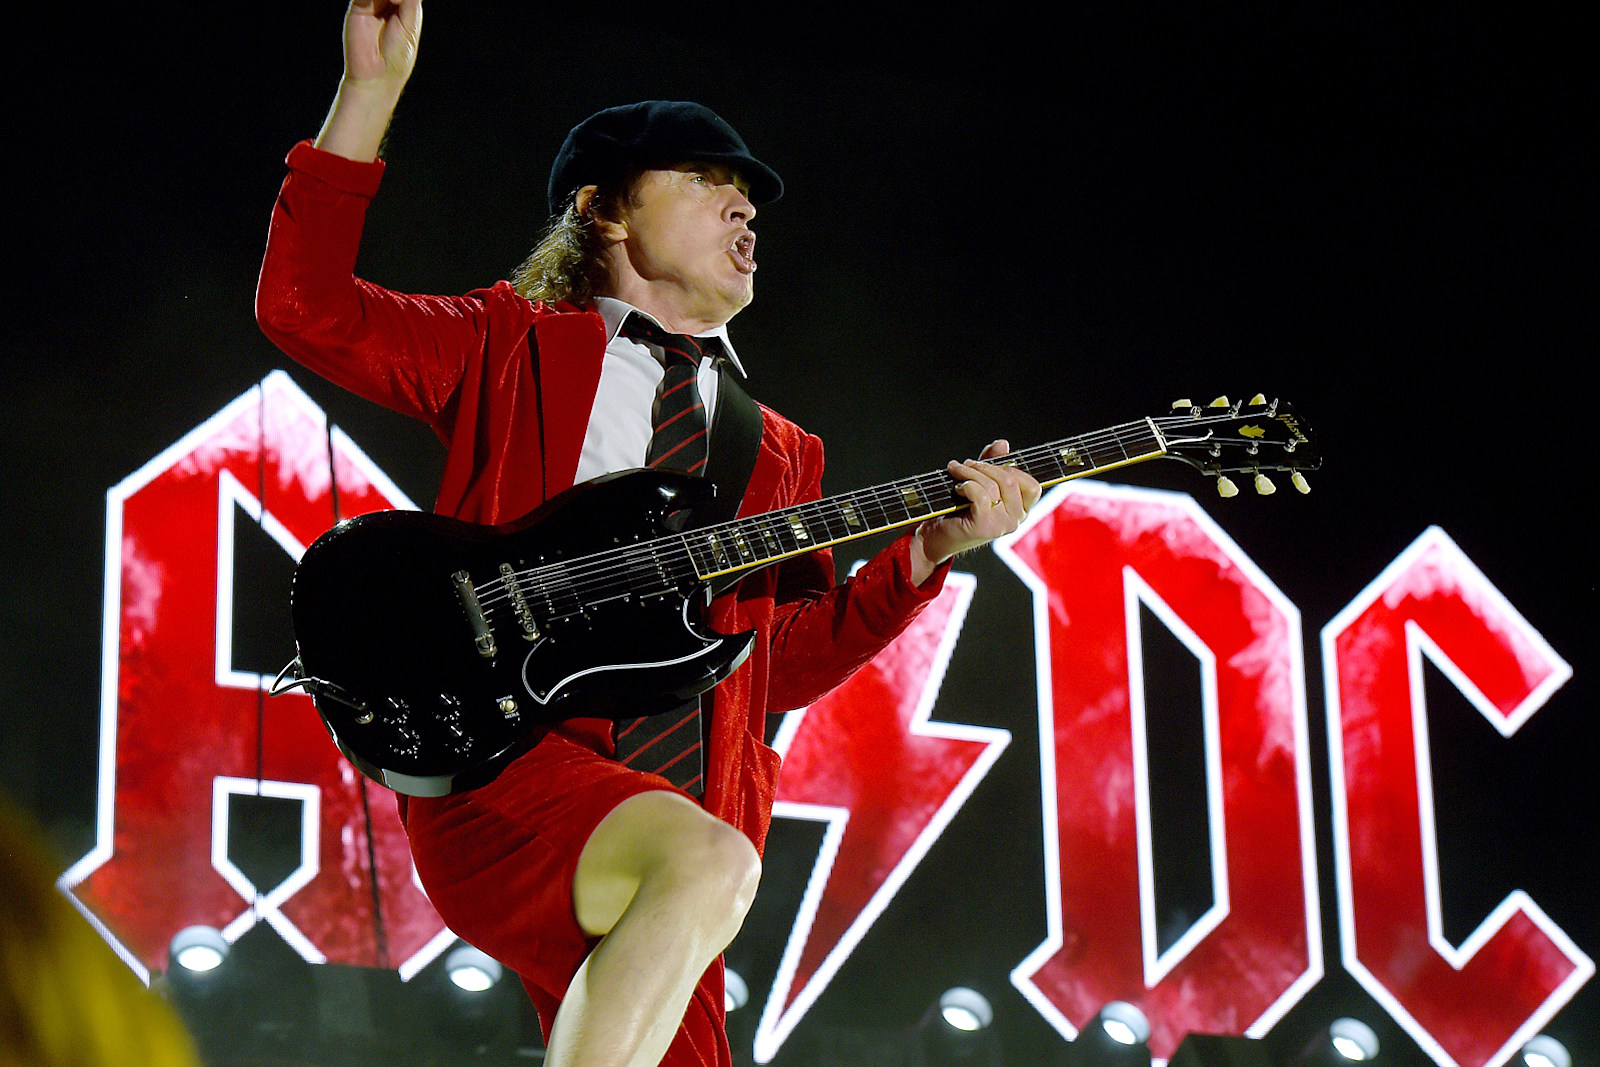 Ac Dc Give Details On New Single Shot In The Dark